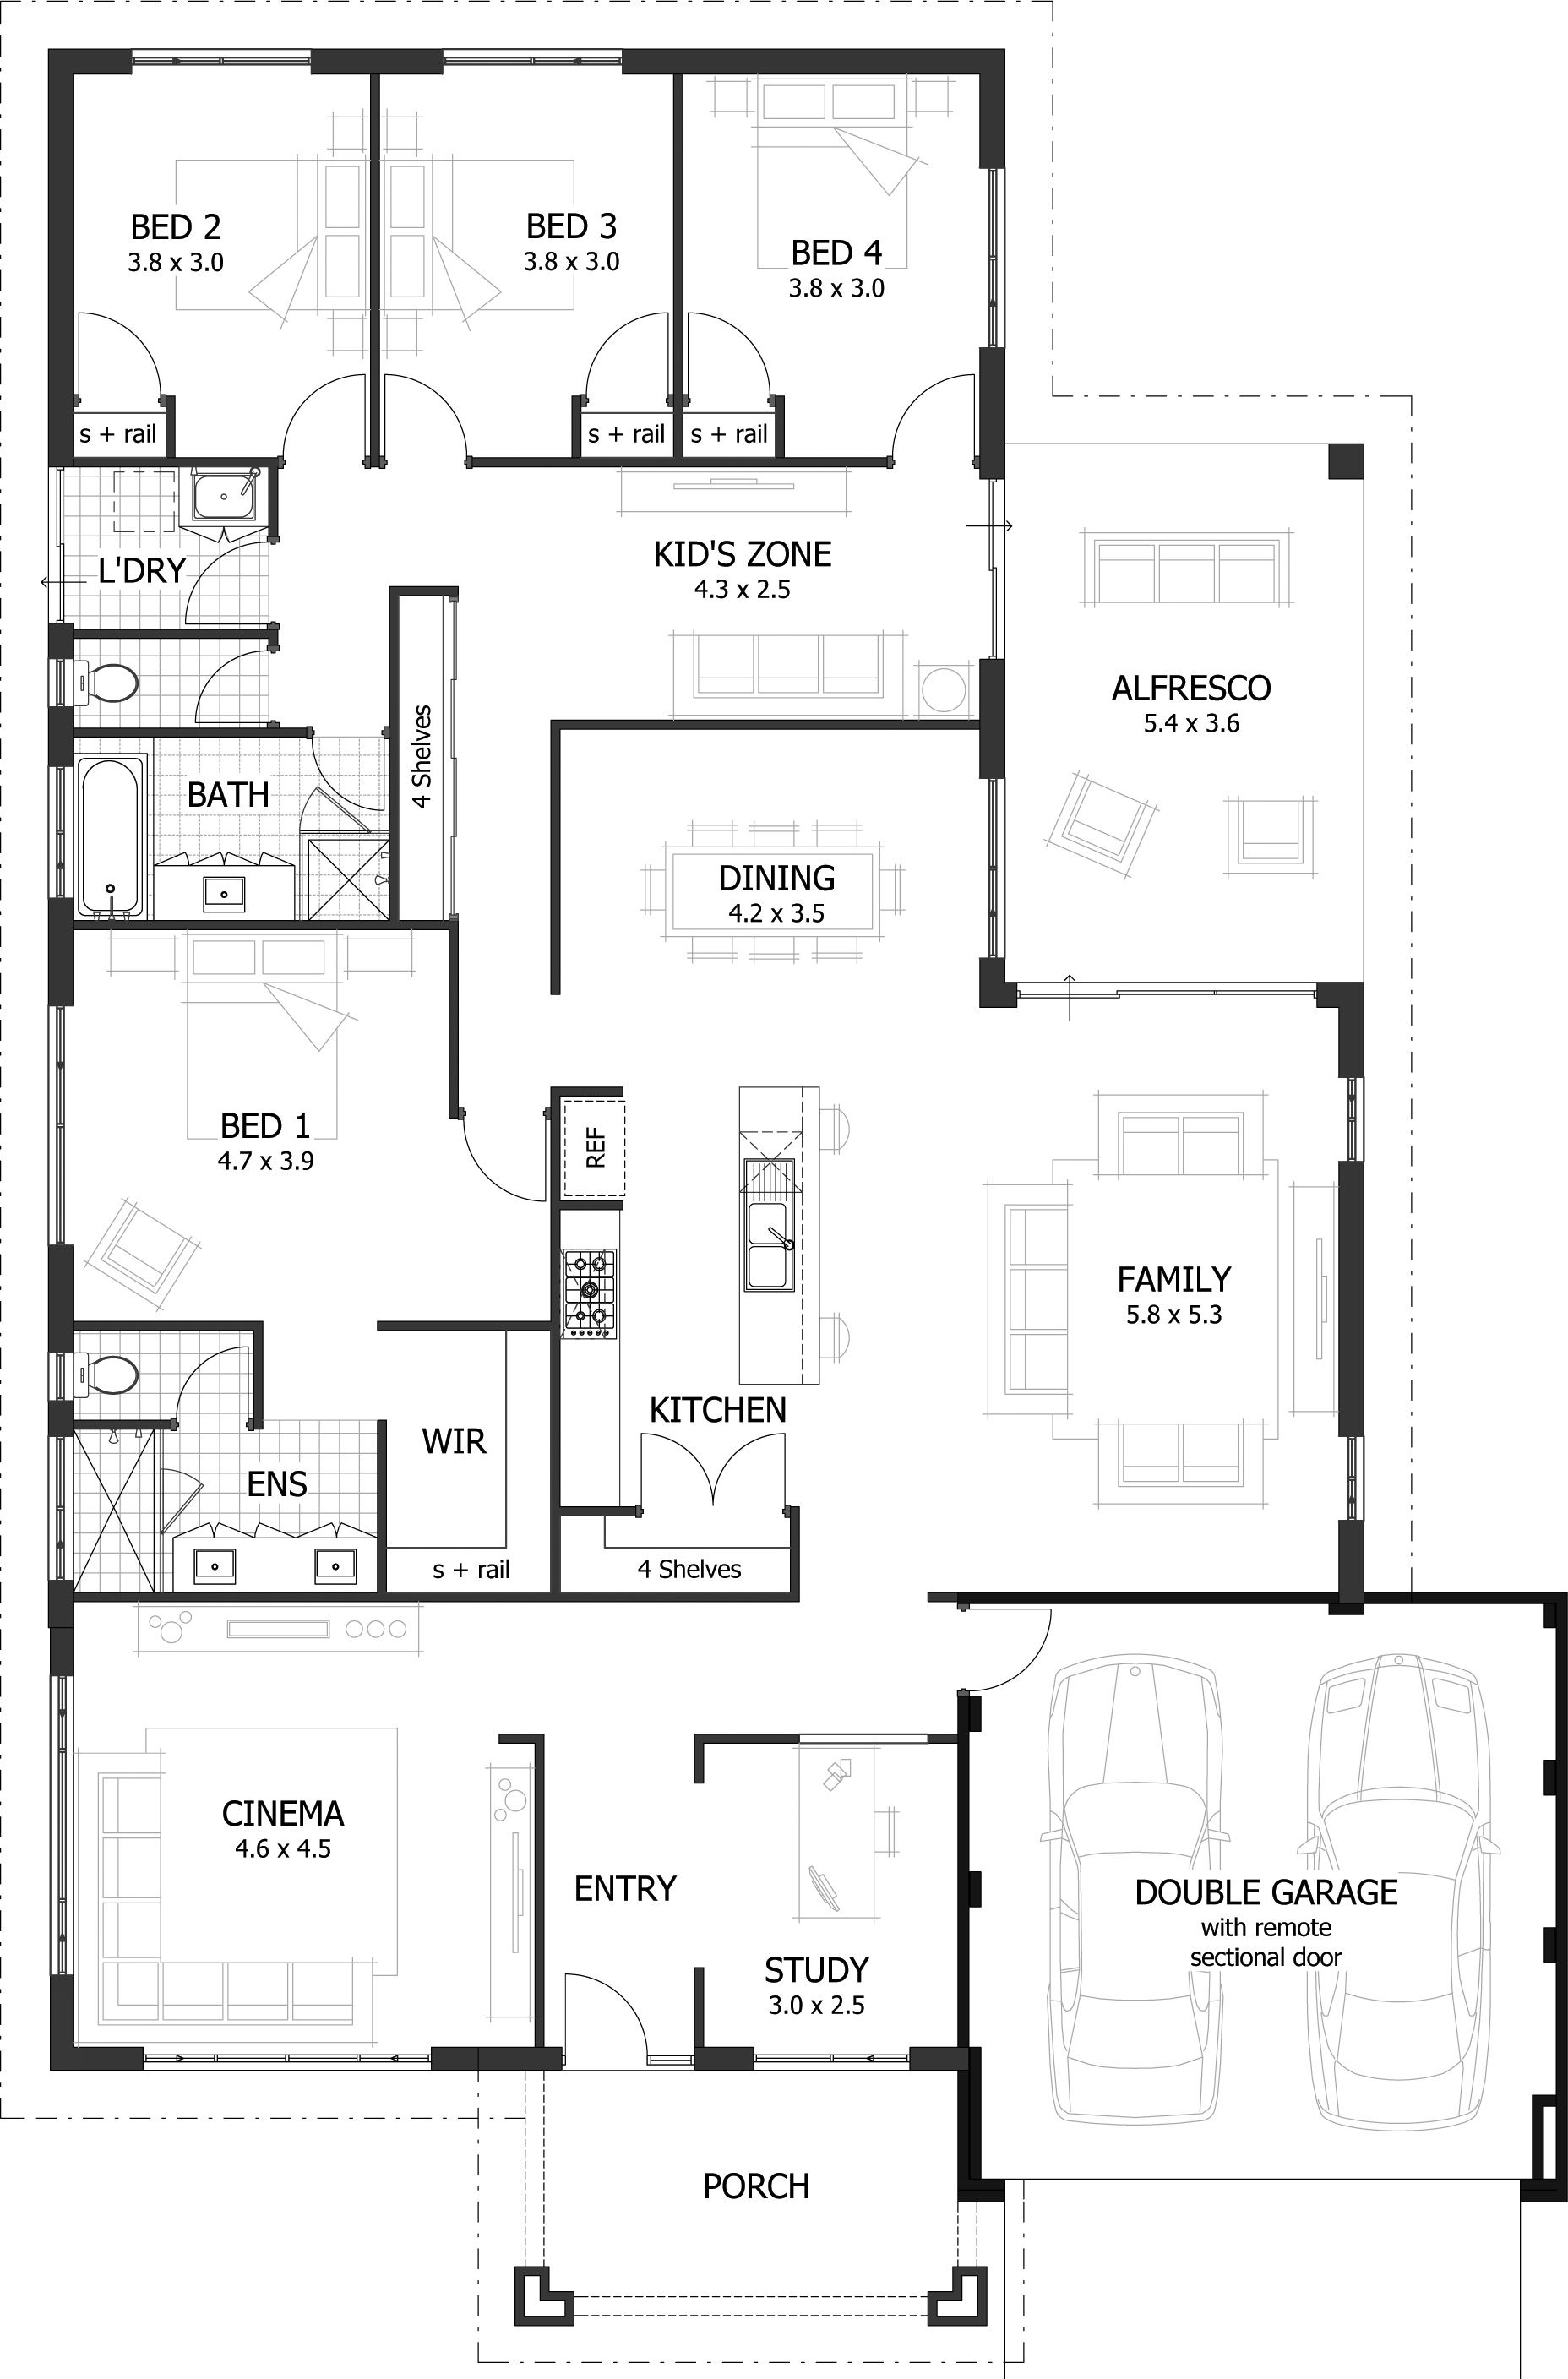 4 bedroom house plans home designs celebration homes for 3 bedroom ensuite house plans